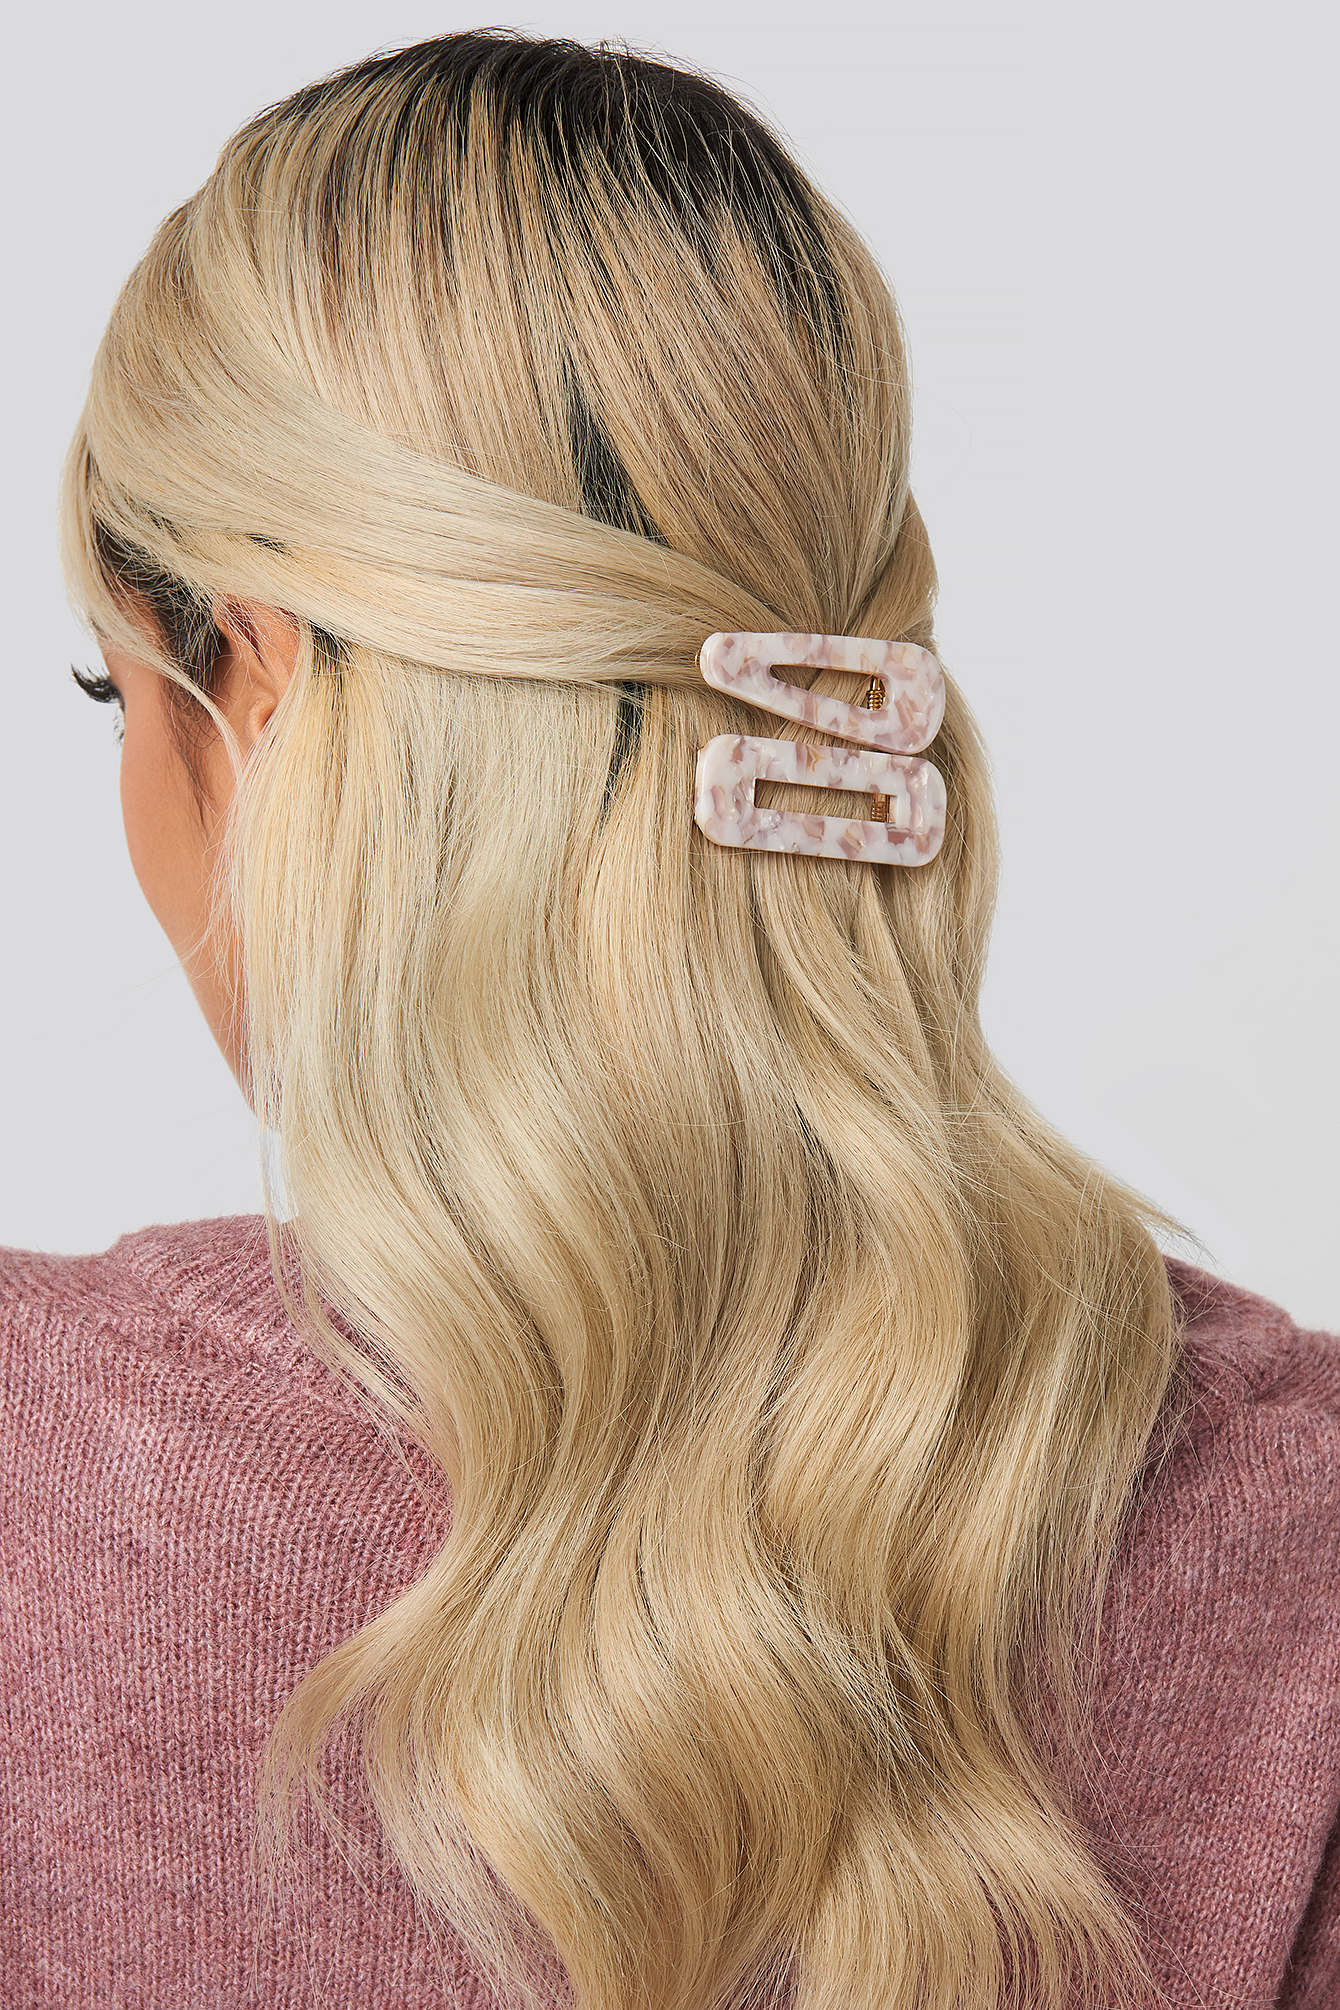 na-kd accessories -  Light Stony Hairclips - Pink,White